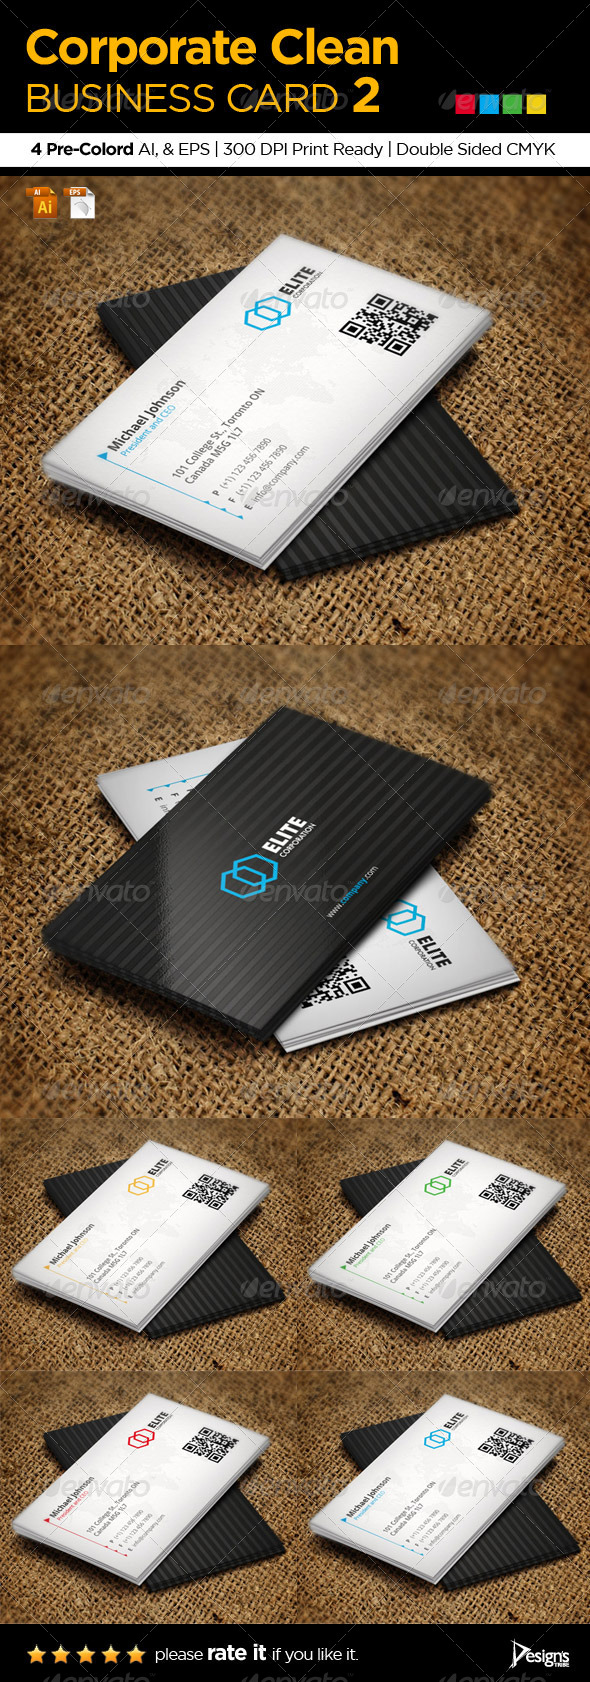 Corporate Clean Business Card 2 - Corporate Business Cards